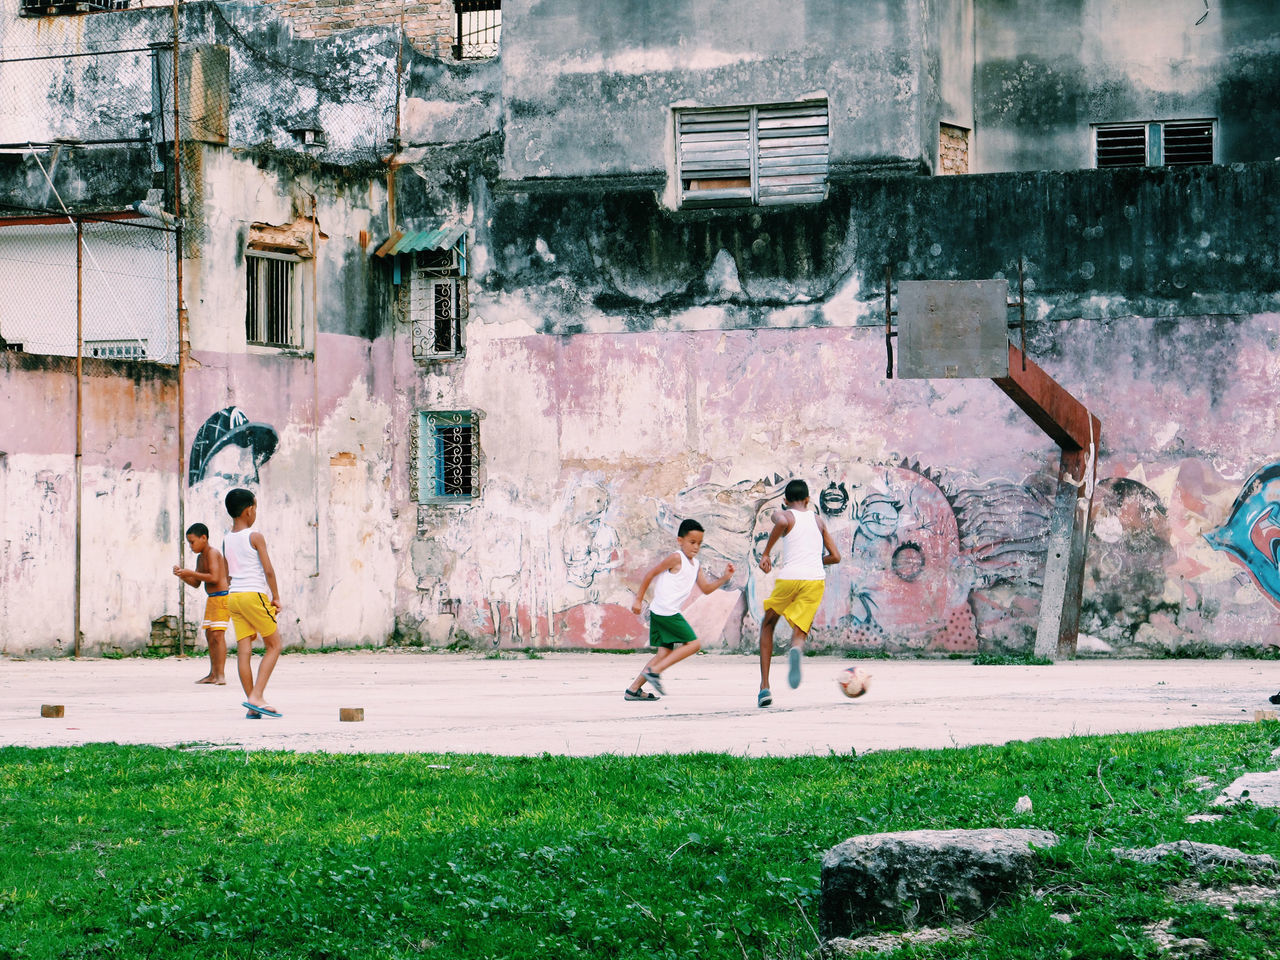 full length, graffiti, building exterior, running, built structure, outdoors, lifestyles, architecture, day, leisure activity, exercising, young adult, real people, sport, young women, sports clothing, men, city, adult, friendship, people, sportsman, adults only, ghetto